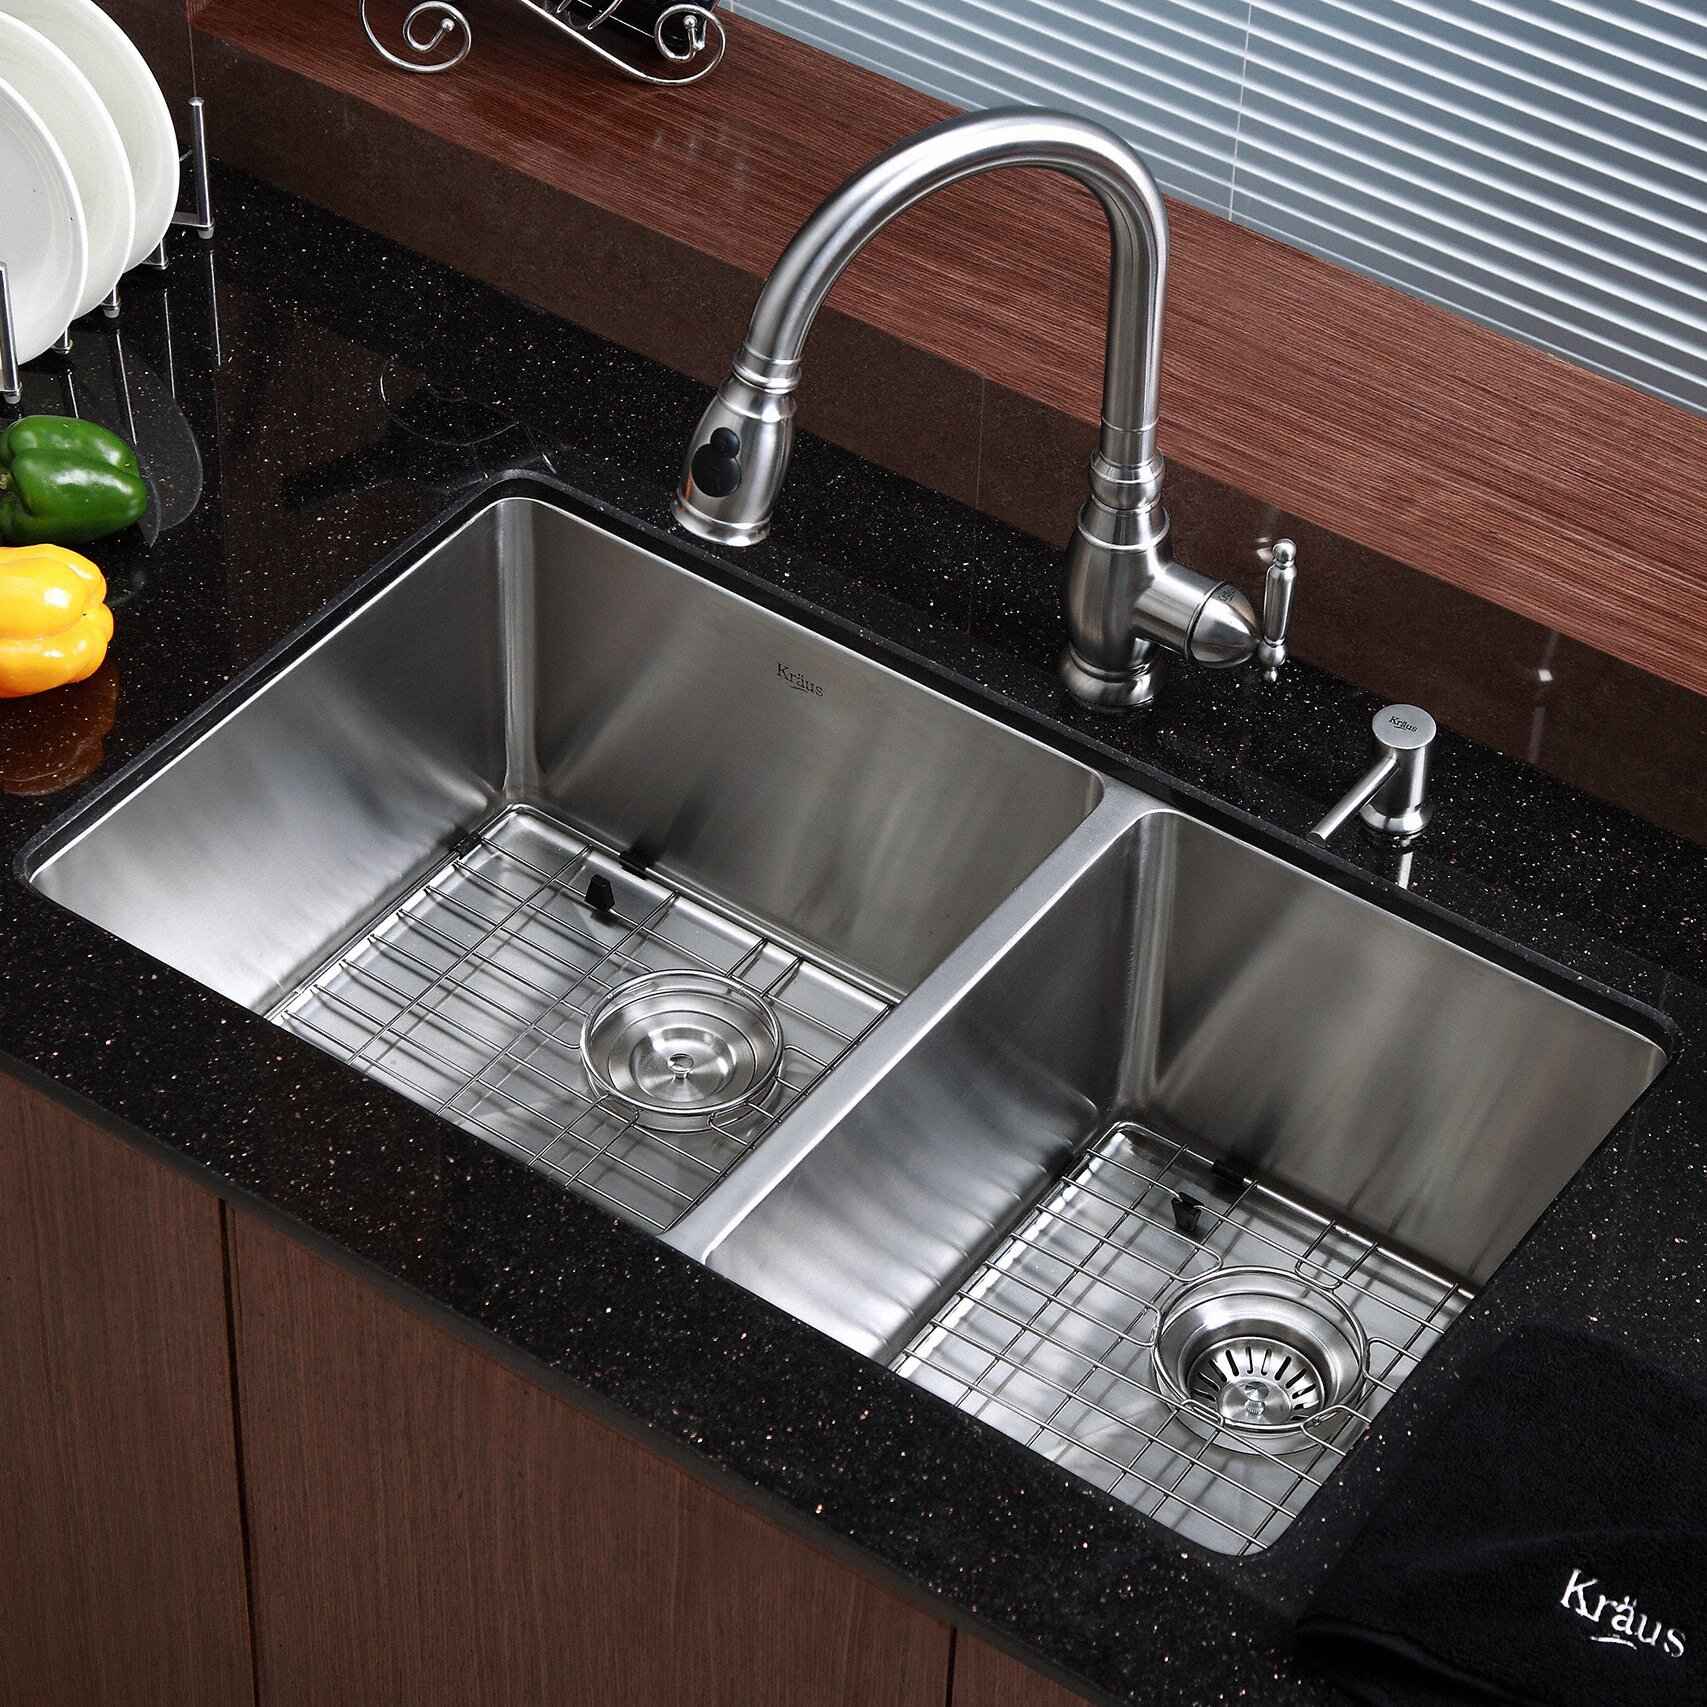 "Kitchen Sink Kraus: Kraus Kitchen Sink 32.75"" X 19"" Double Bowl Undermount"